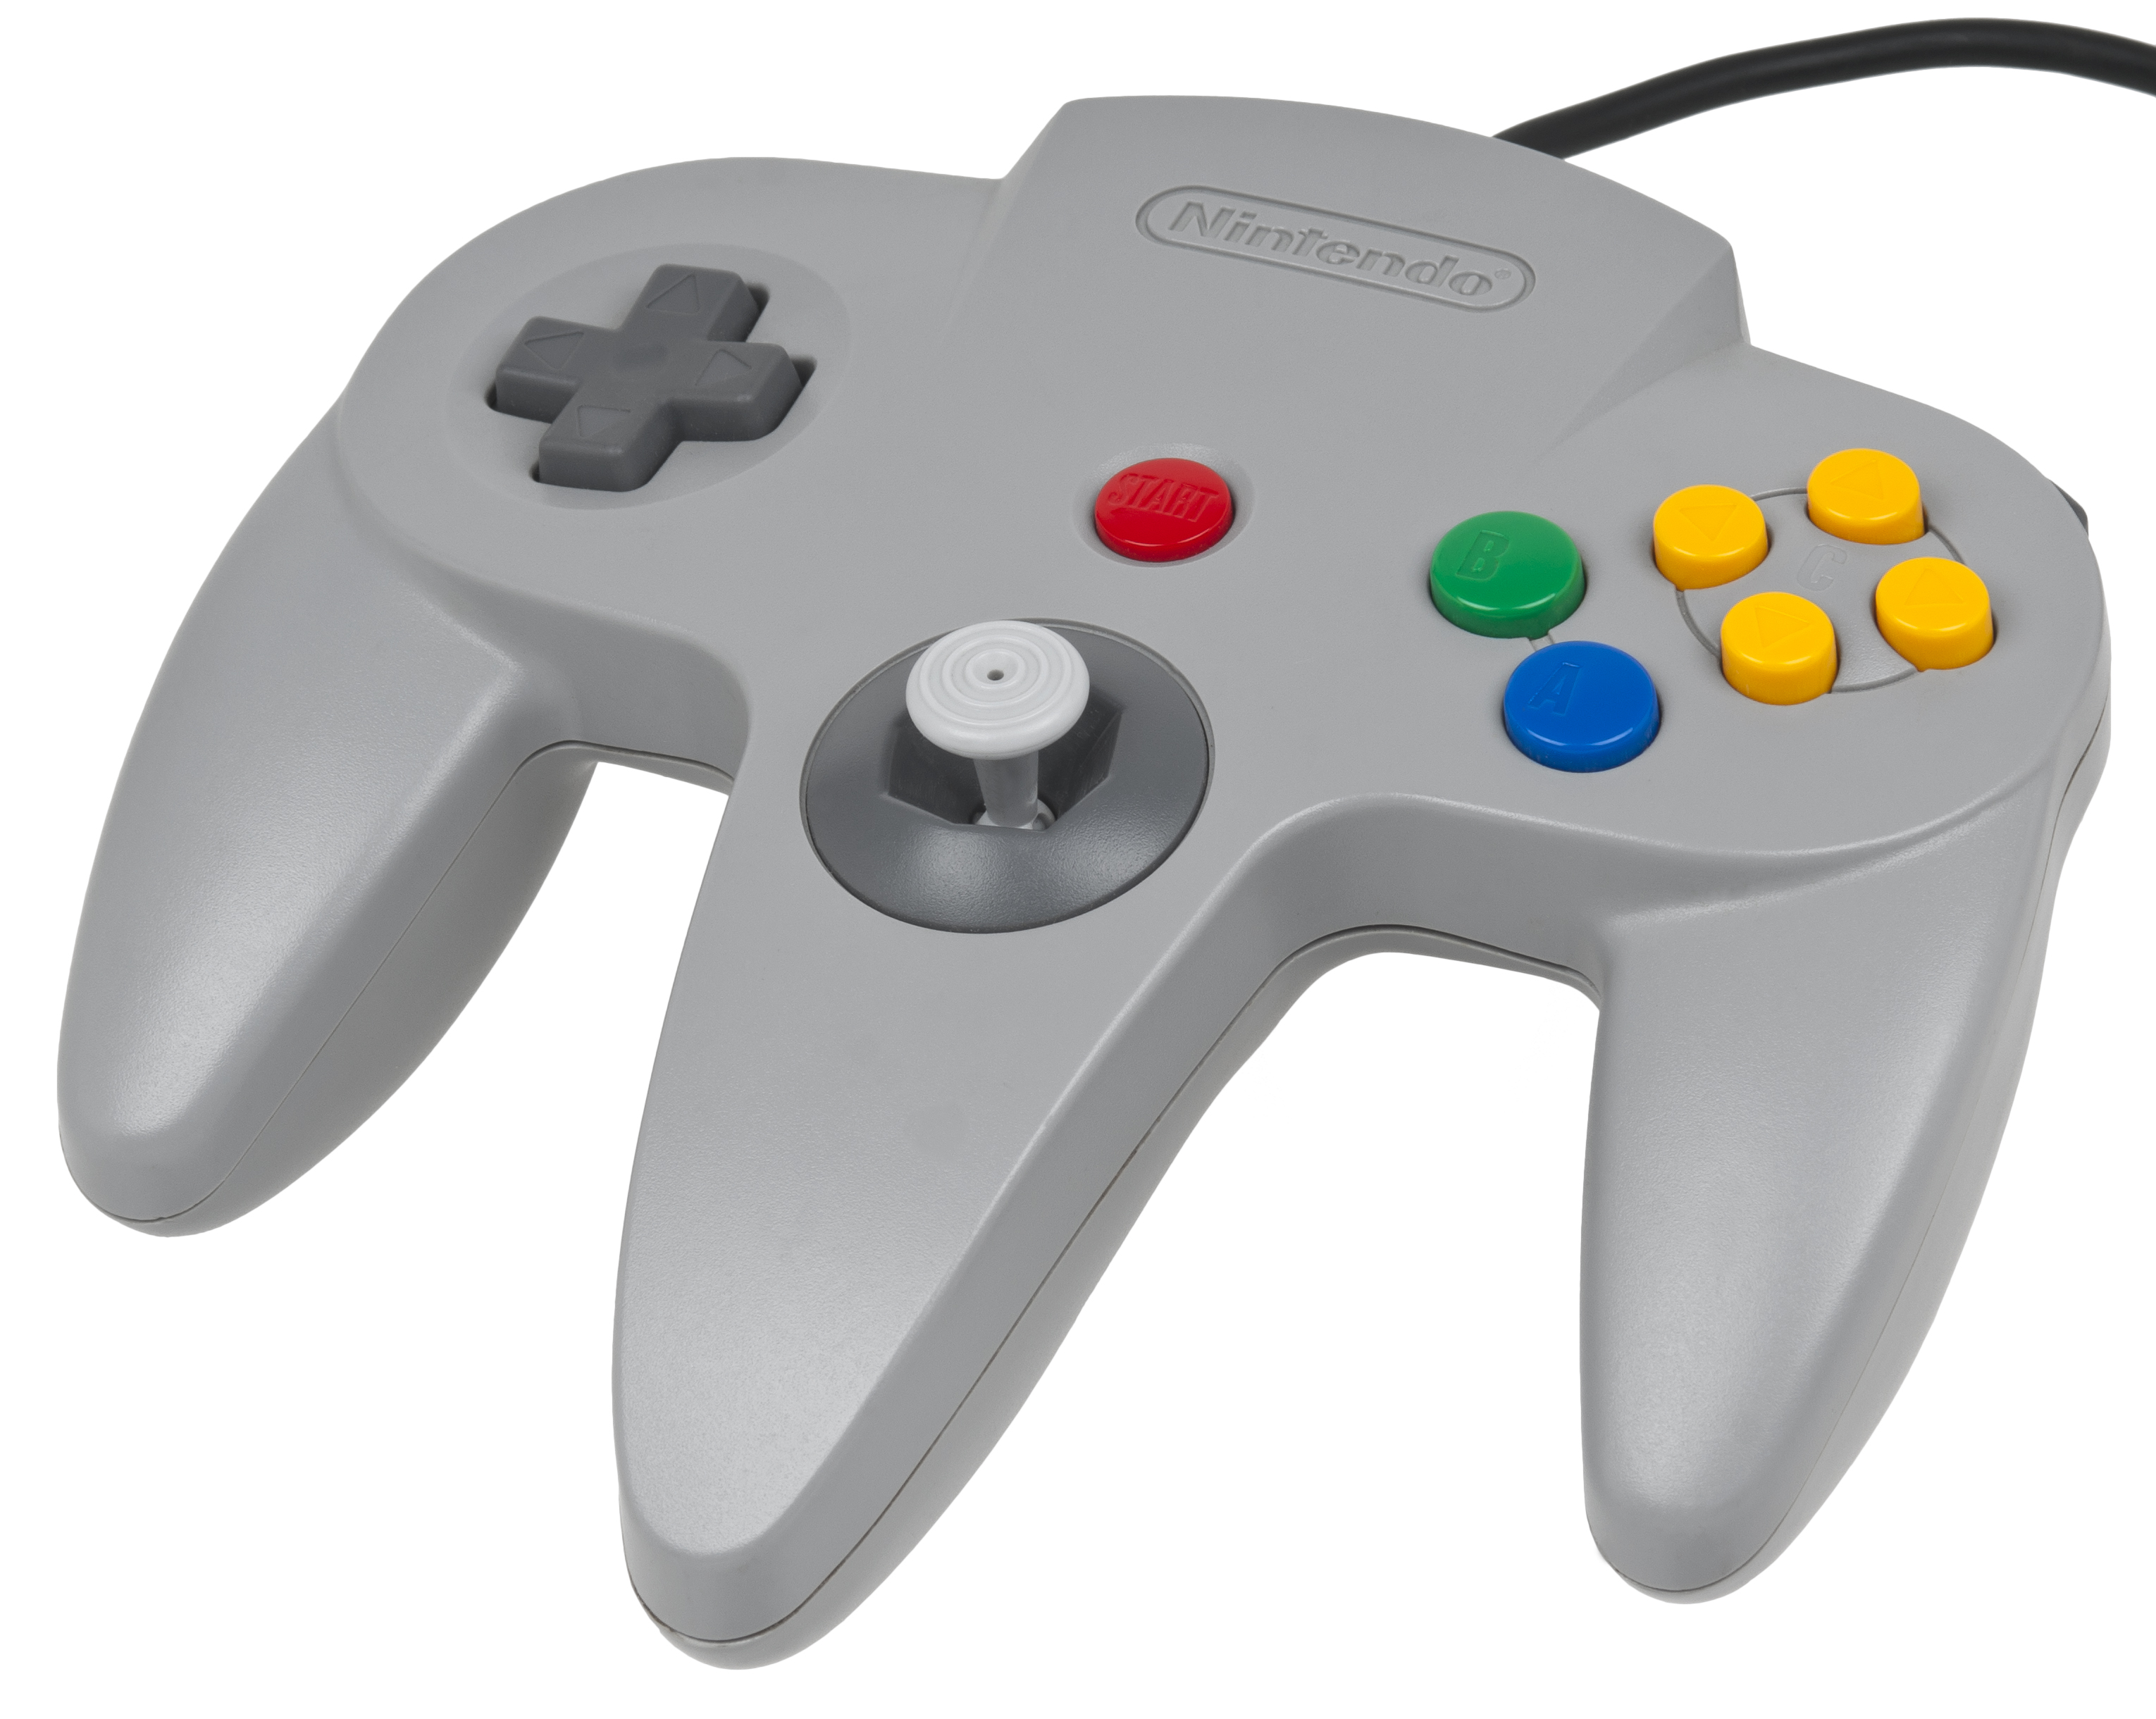 Admirable N64 Controller Diagram Basic Electronics Wiring Diagram Wiring Cloud Pimpapsuggs Outletorg